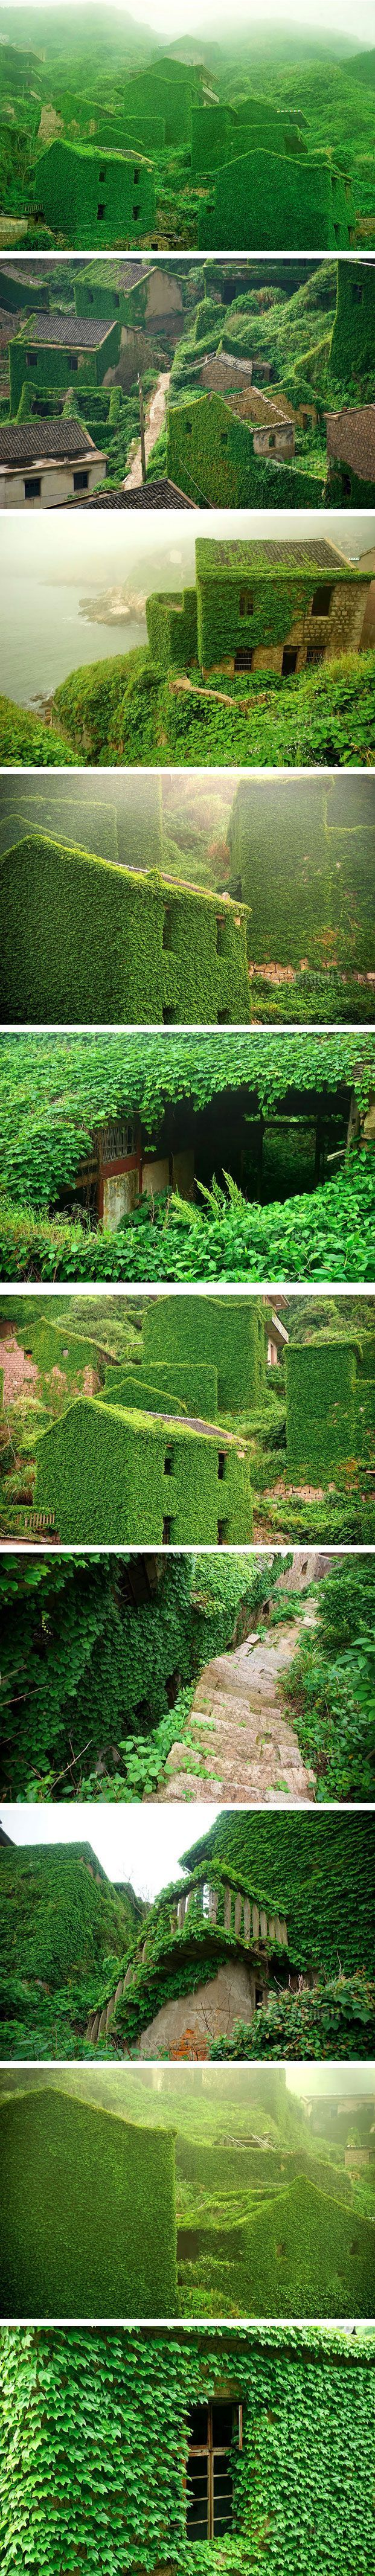 Reclaimed by Mother Nature.....Shengsi, an archipelago of almost 400 islands at the mouth of China's Yangtze river, holds a secret shrouded in time – an abandoned fishing village being reclaimed by nature. These photos by Tang Yuhong, a creative photographer based in Nanning, take us into this lost village on Goqui island.